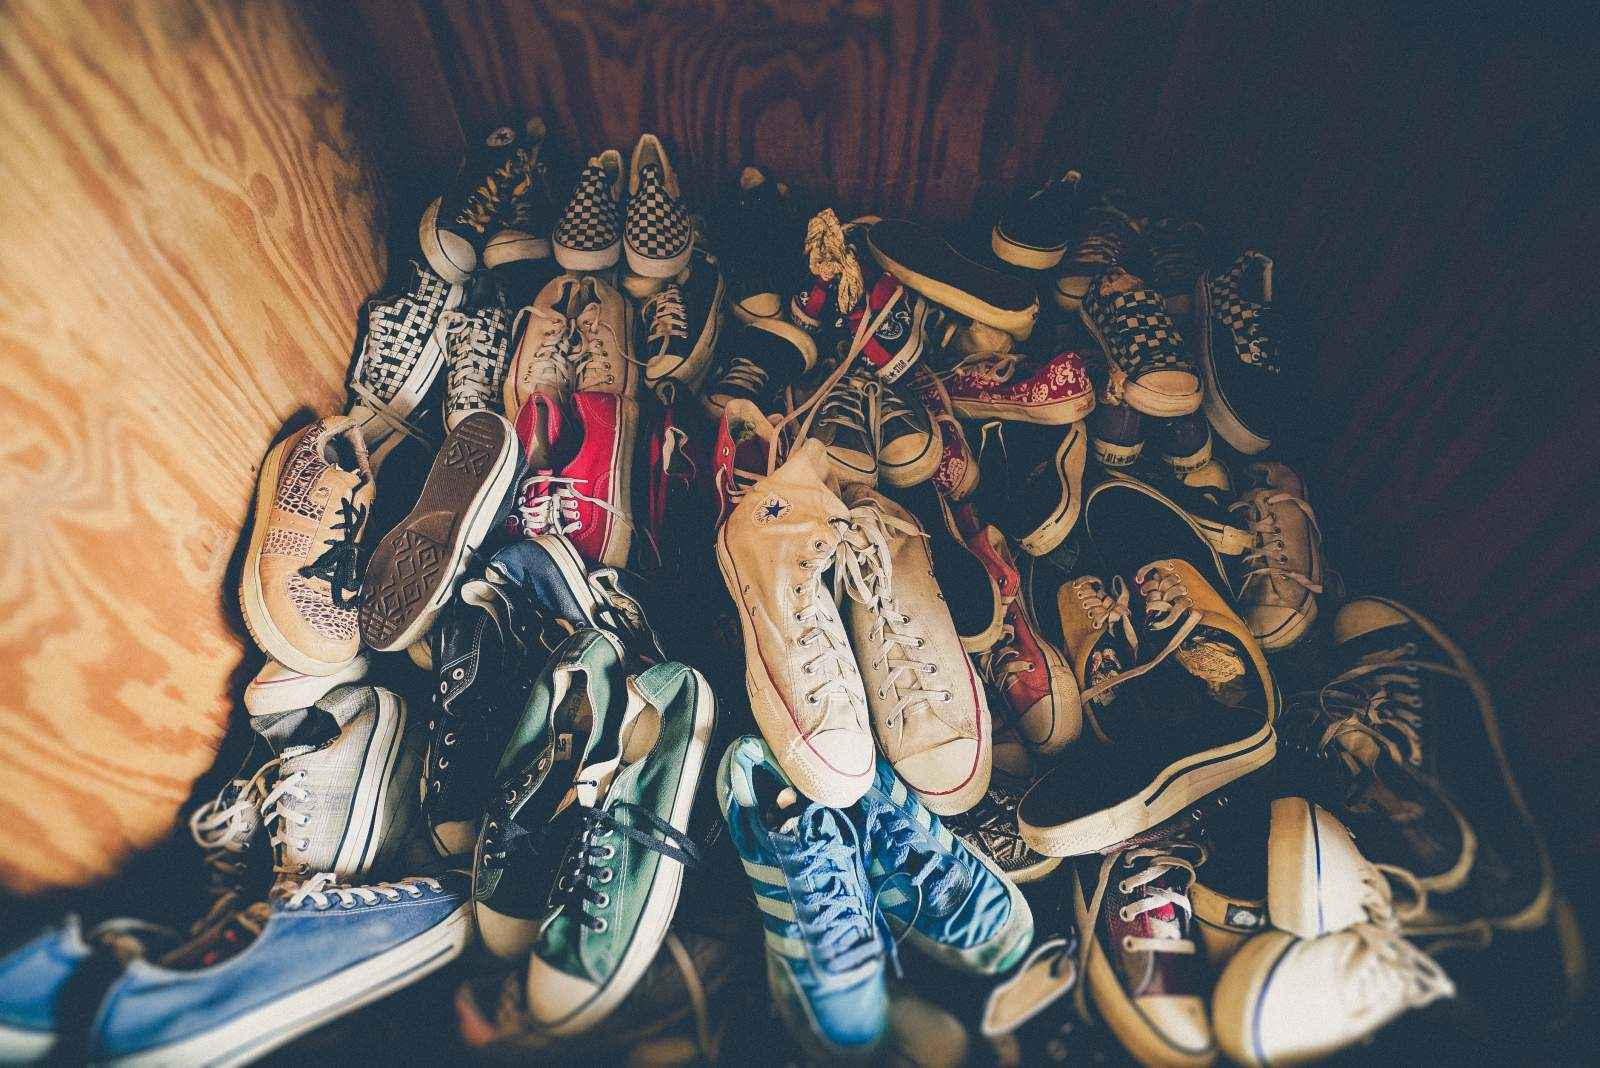 2df4ec1893e5ee Shoe Recycling - How to Give Your Shoes a New Purpose